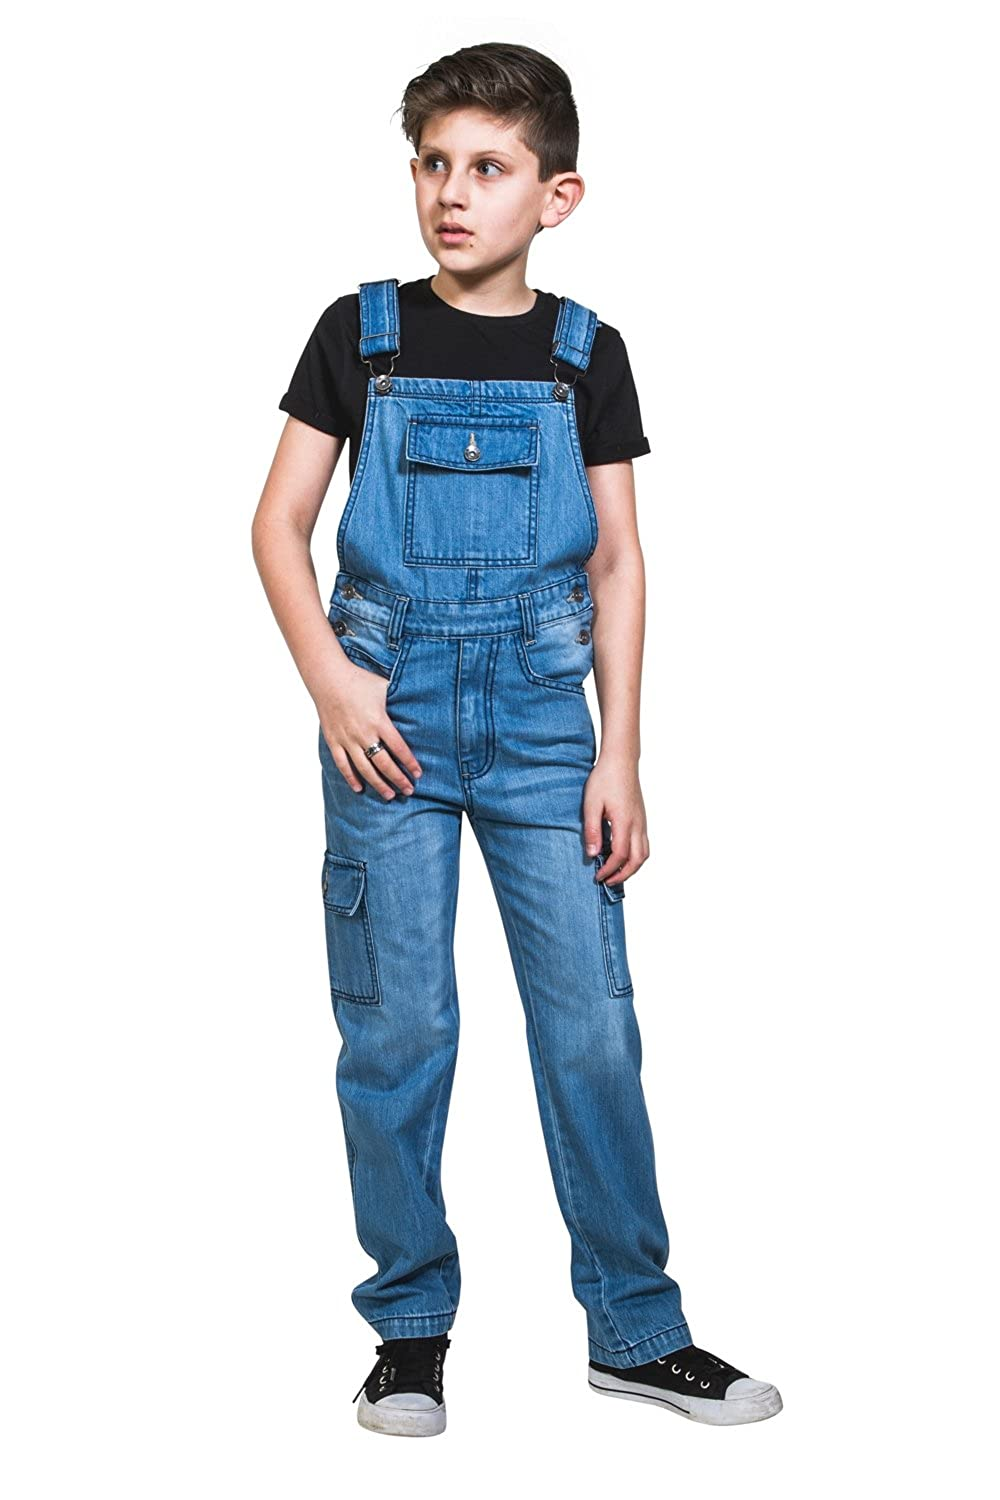 1930s Childrens Fashion: Girls, Boys, Toddler, Baby Costumes Uskees Kids Palewash Denim Dungarees Age 4-14 Boys Girls Cargo Overalls BENJAMINPW £29.99 AT vintagedancer.com